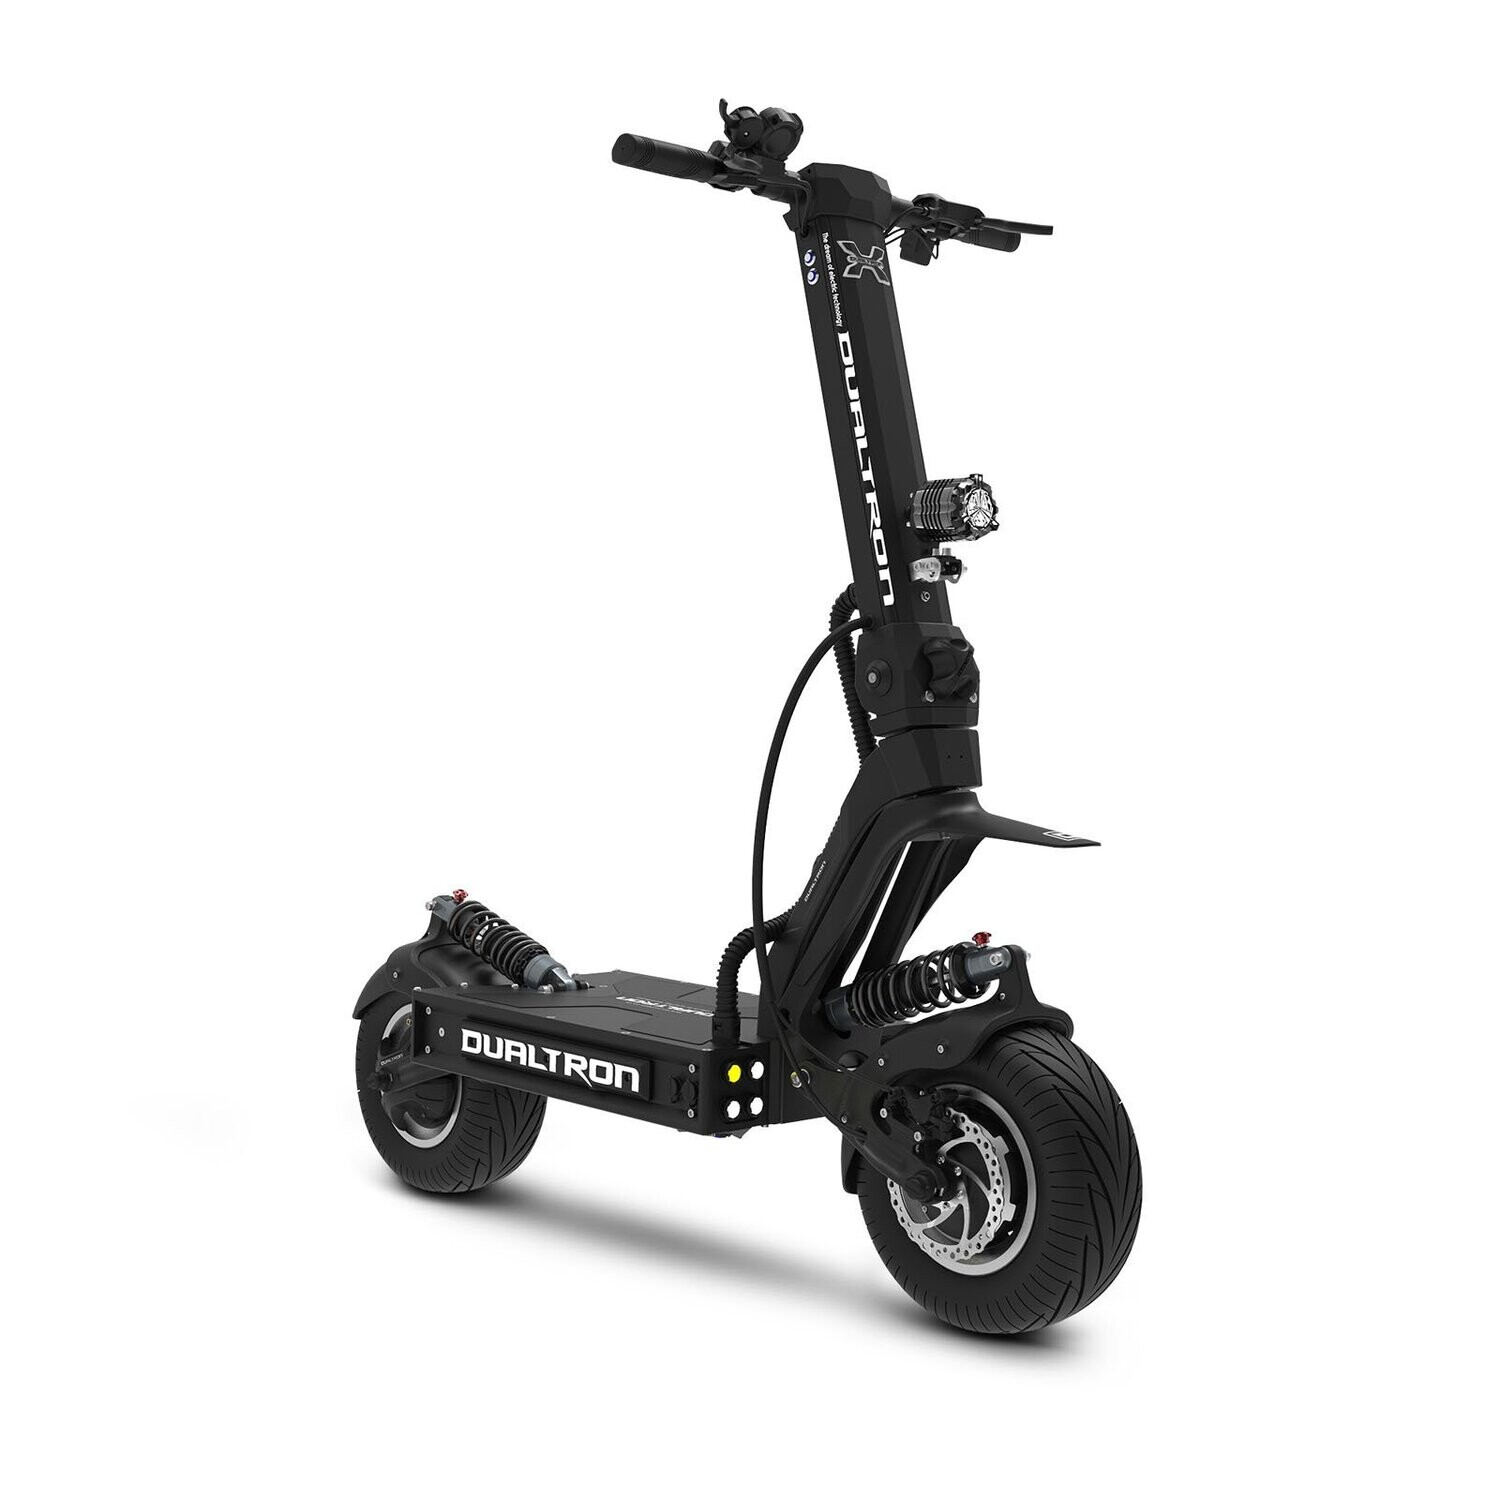 Dualtron X2 Electric Scooter - Extremly Fast 55+ MPH - 93 Mile Range